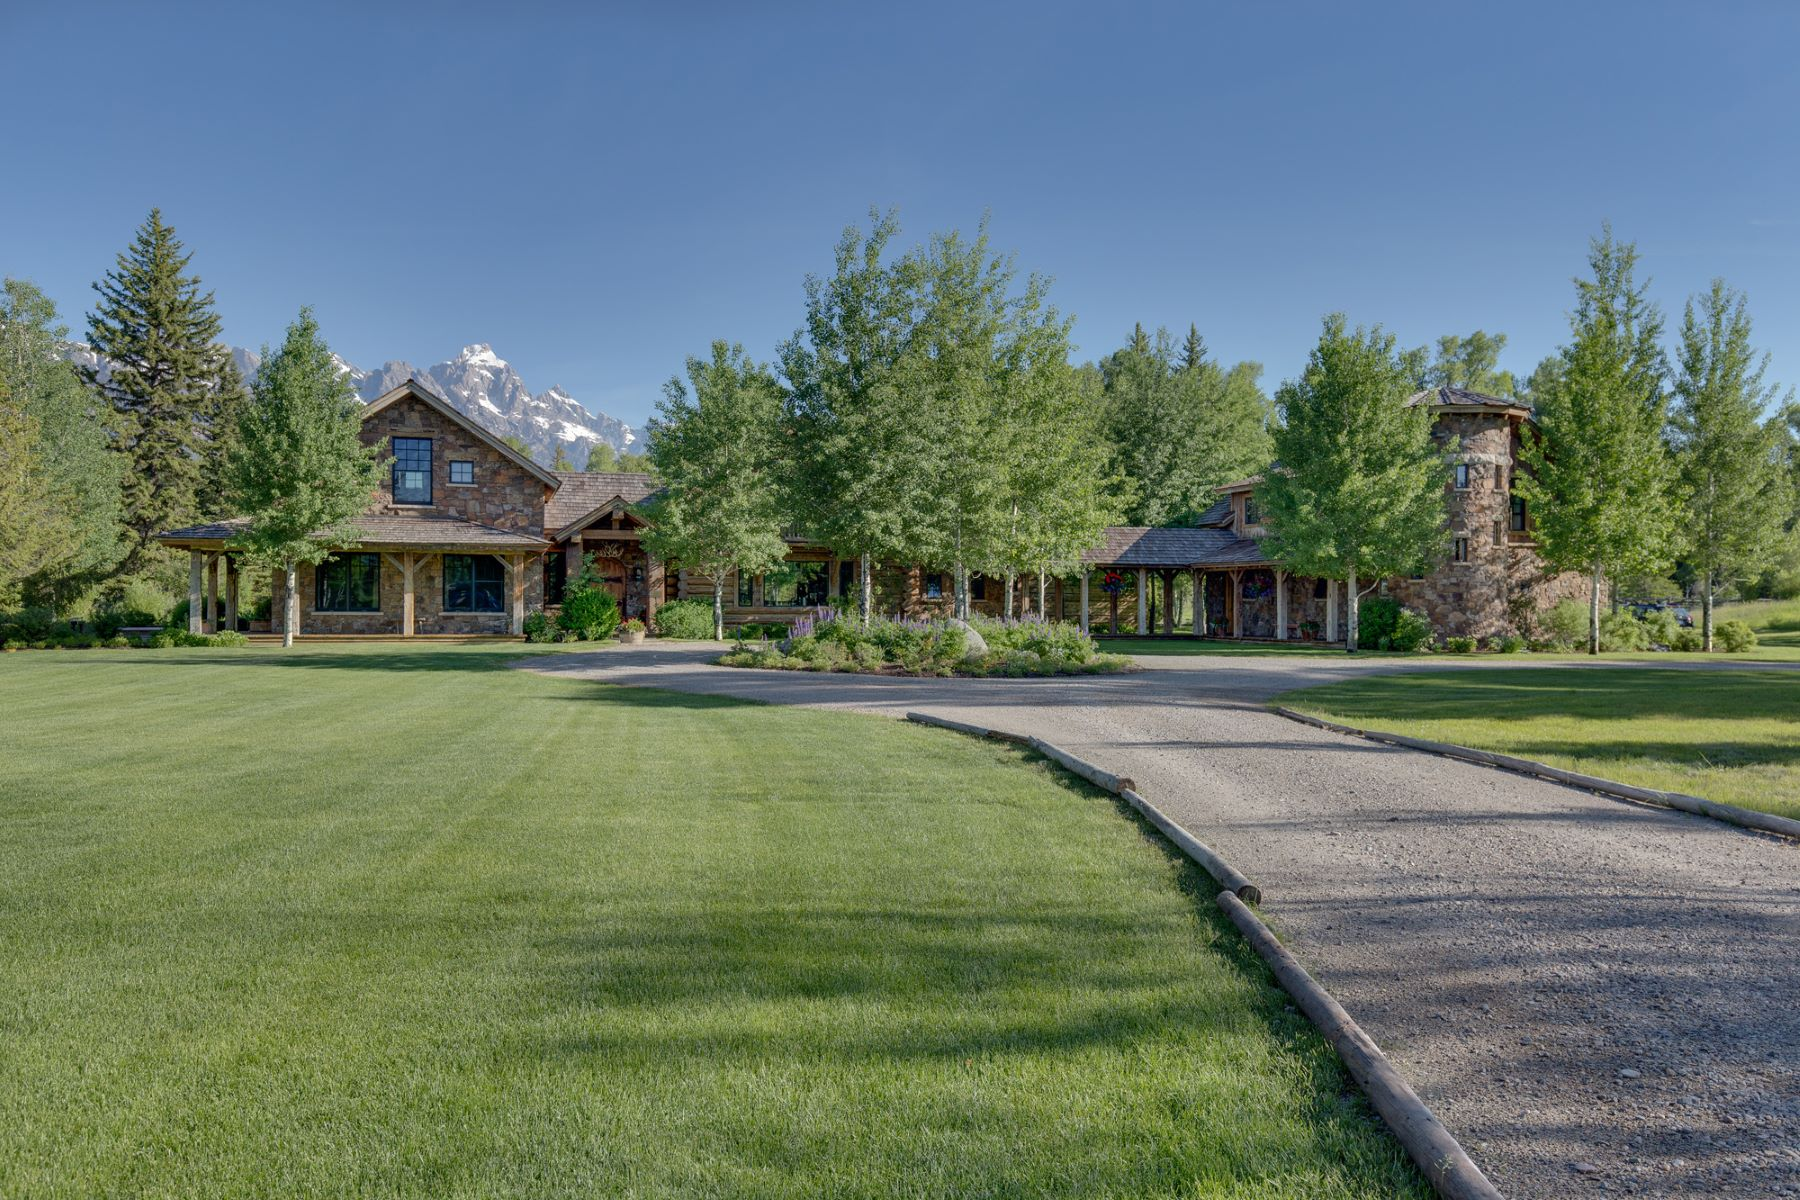 Single Family Home for Sale at Timeless Appeal on the Snake River 1205 E Middle Meadow Road Jackson, Wyoming 83001 United States